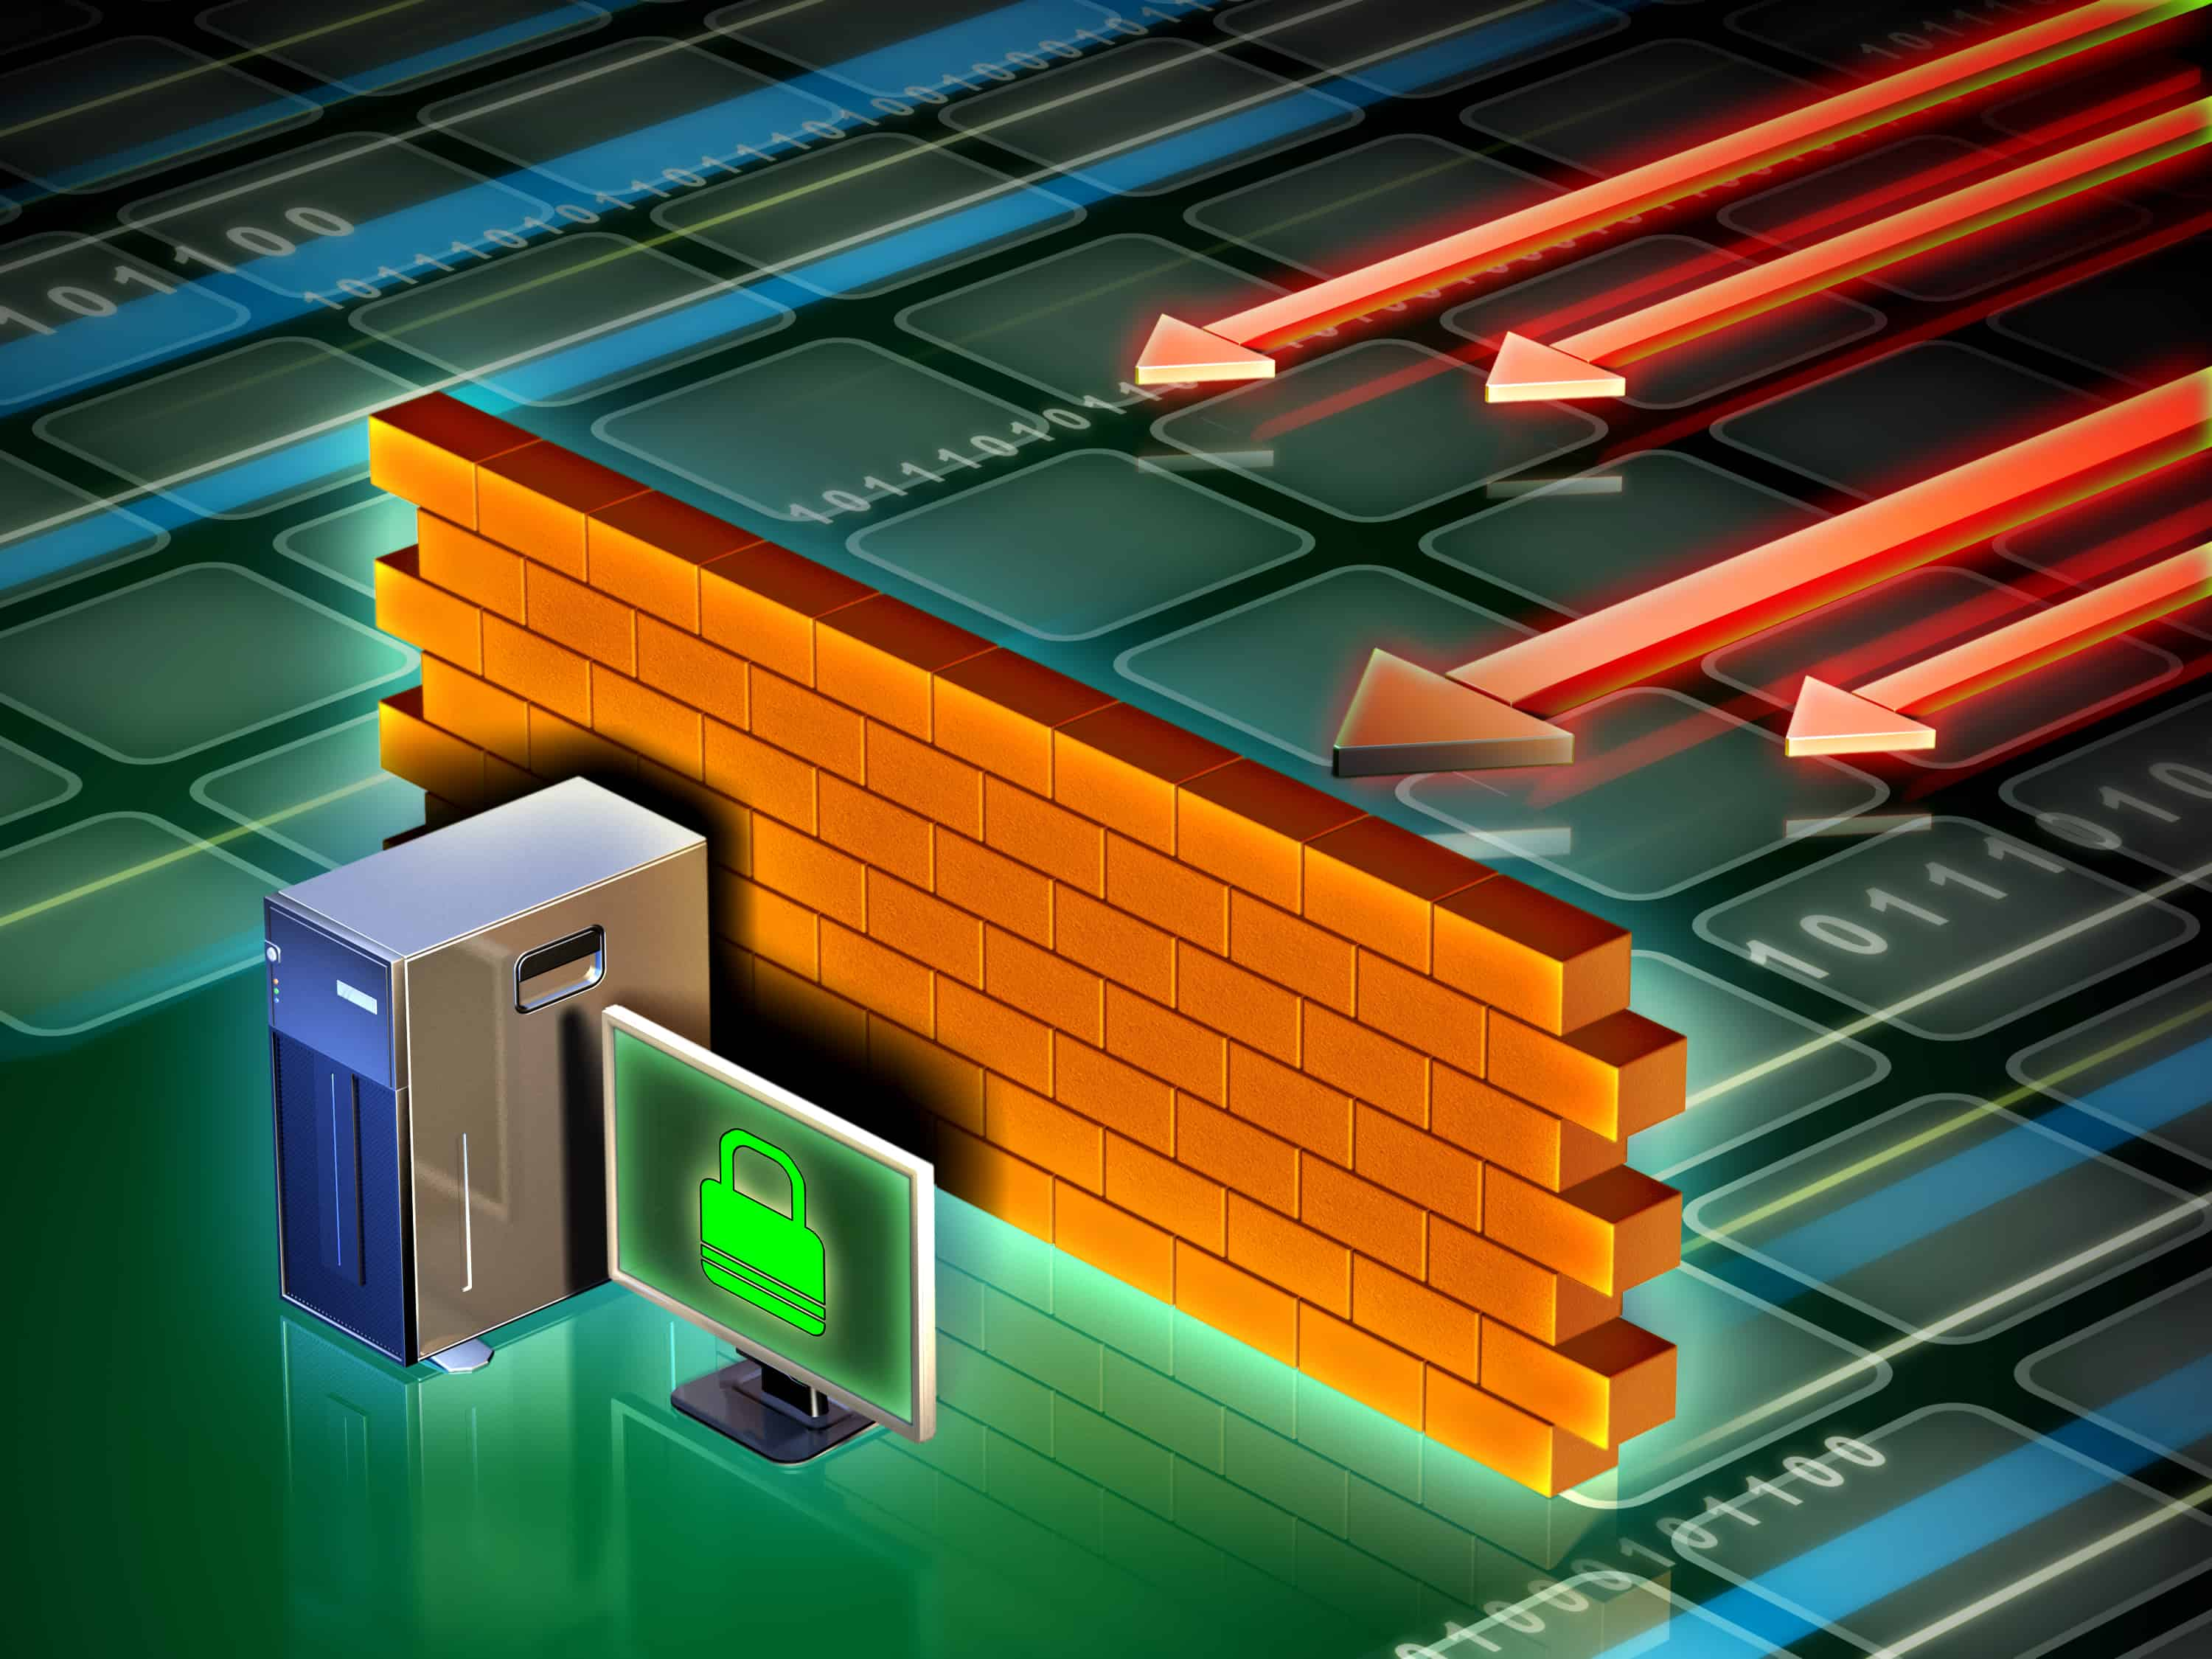 Illustration of a computer firewall